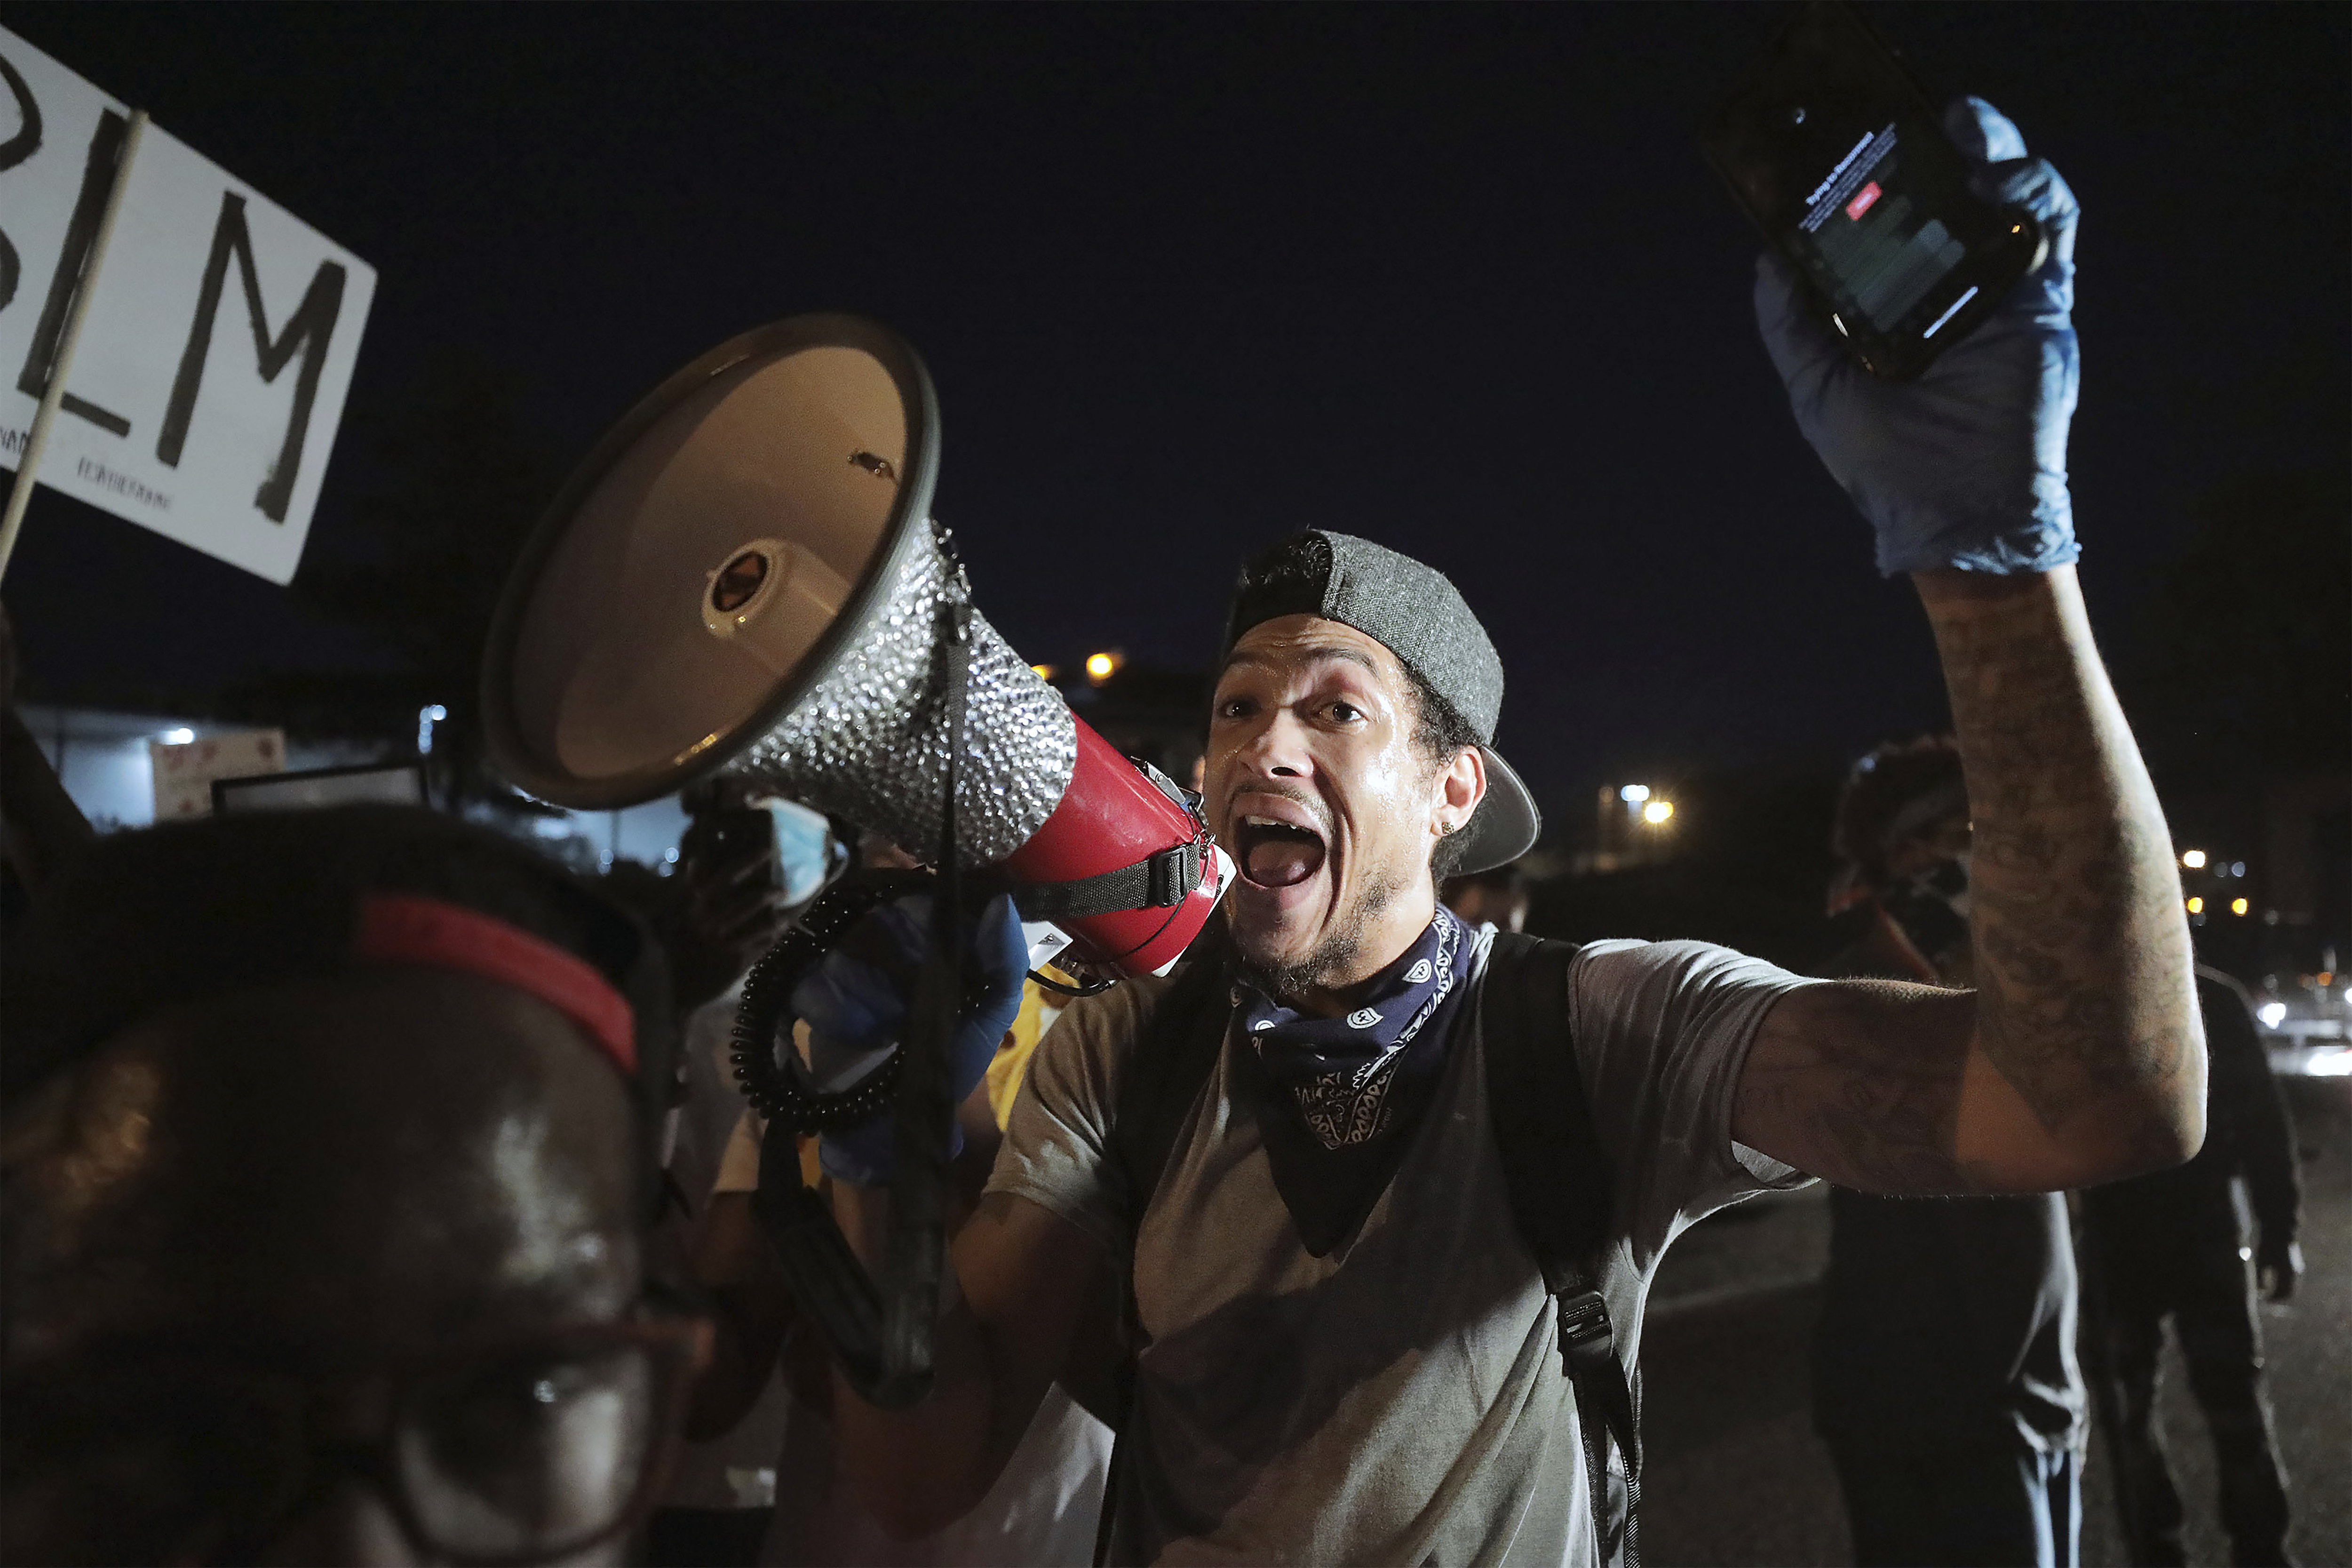 Protestors celebrate after eluding authorities and stopping traffic along Interstate 55 in Memphis, Tennessee, Sunday, May 31, 2020, during a protest over the death of George Floyd on May 25. (Patrick Lantrip/Daily Memphian via AP)